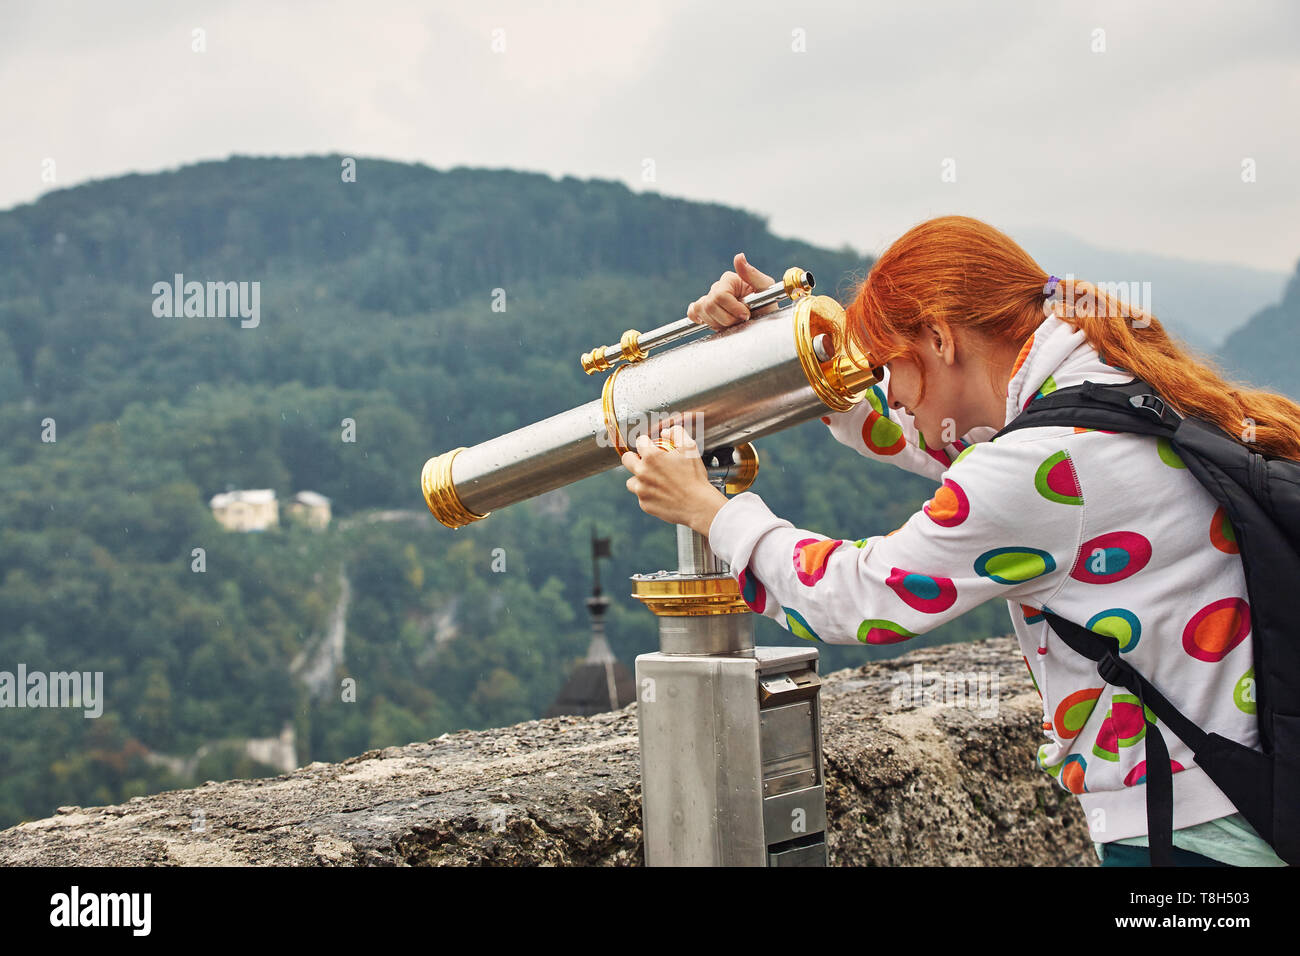 Young woman looking through sightseeing telescope a city with an observation deck - Stock Image